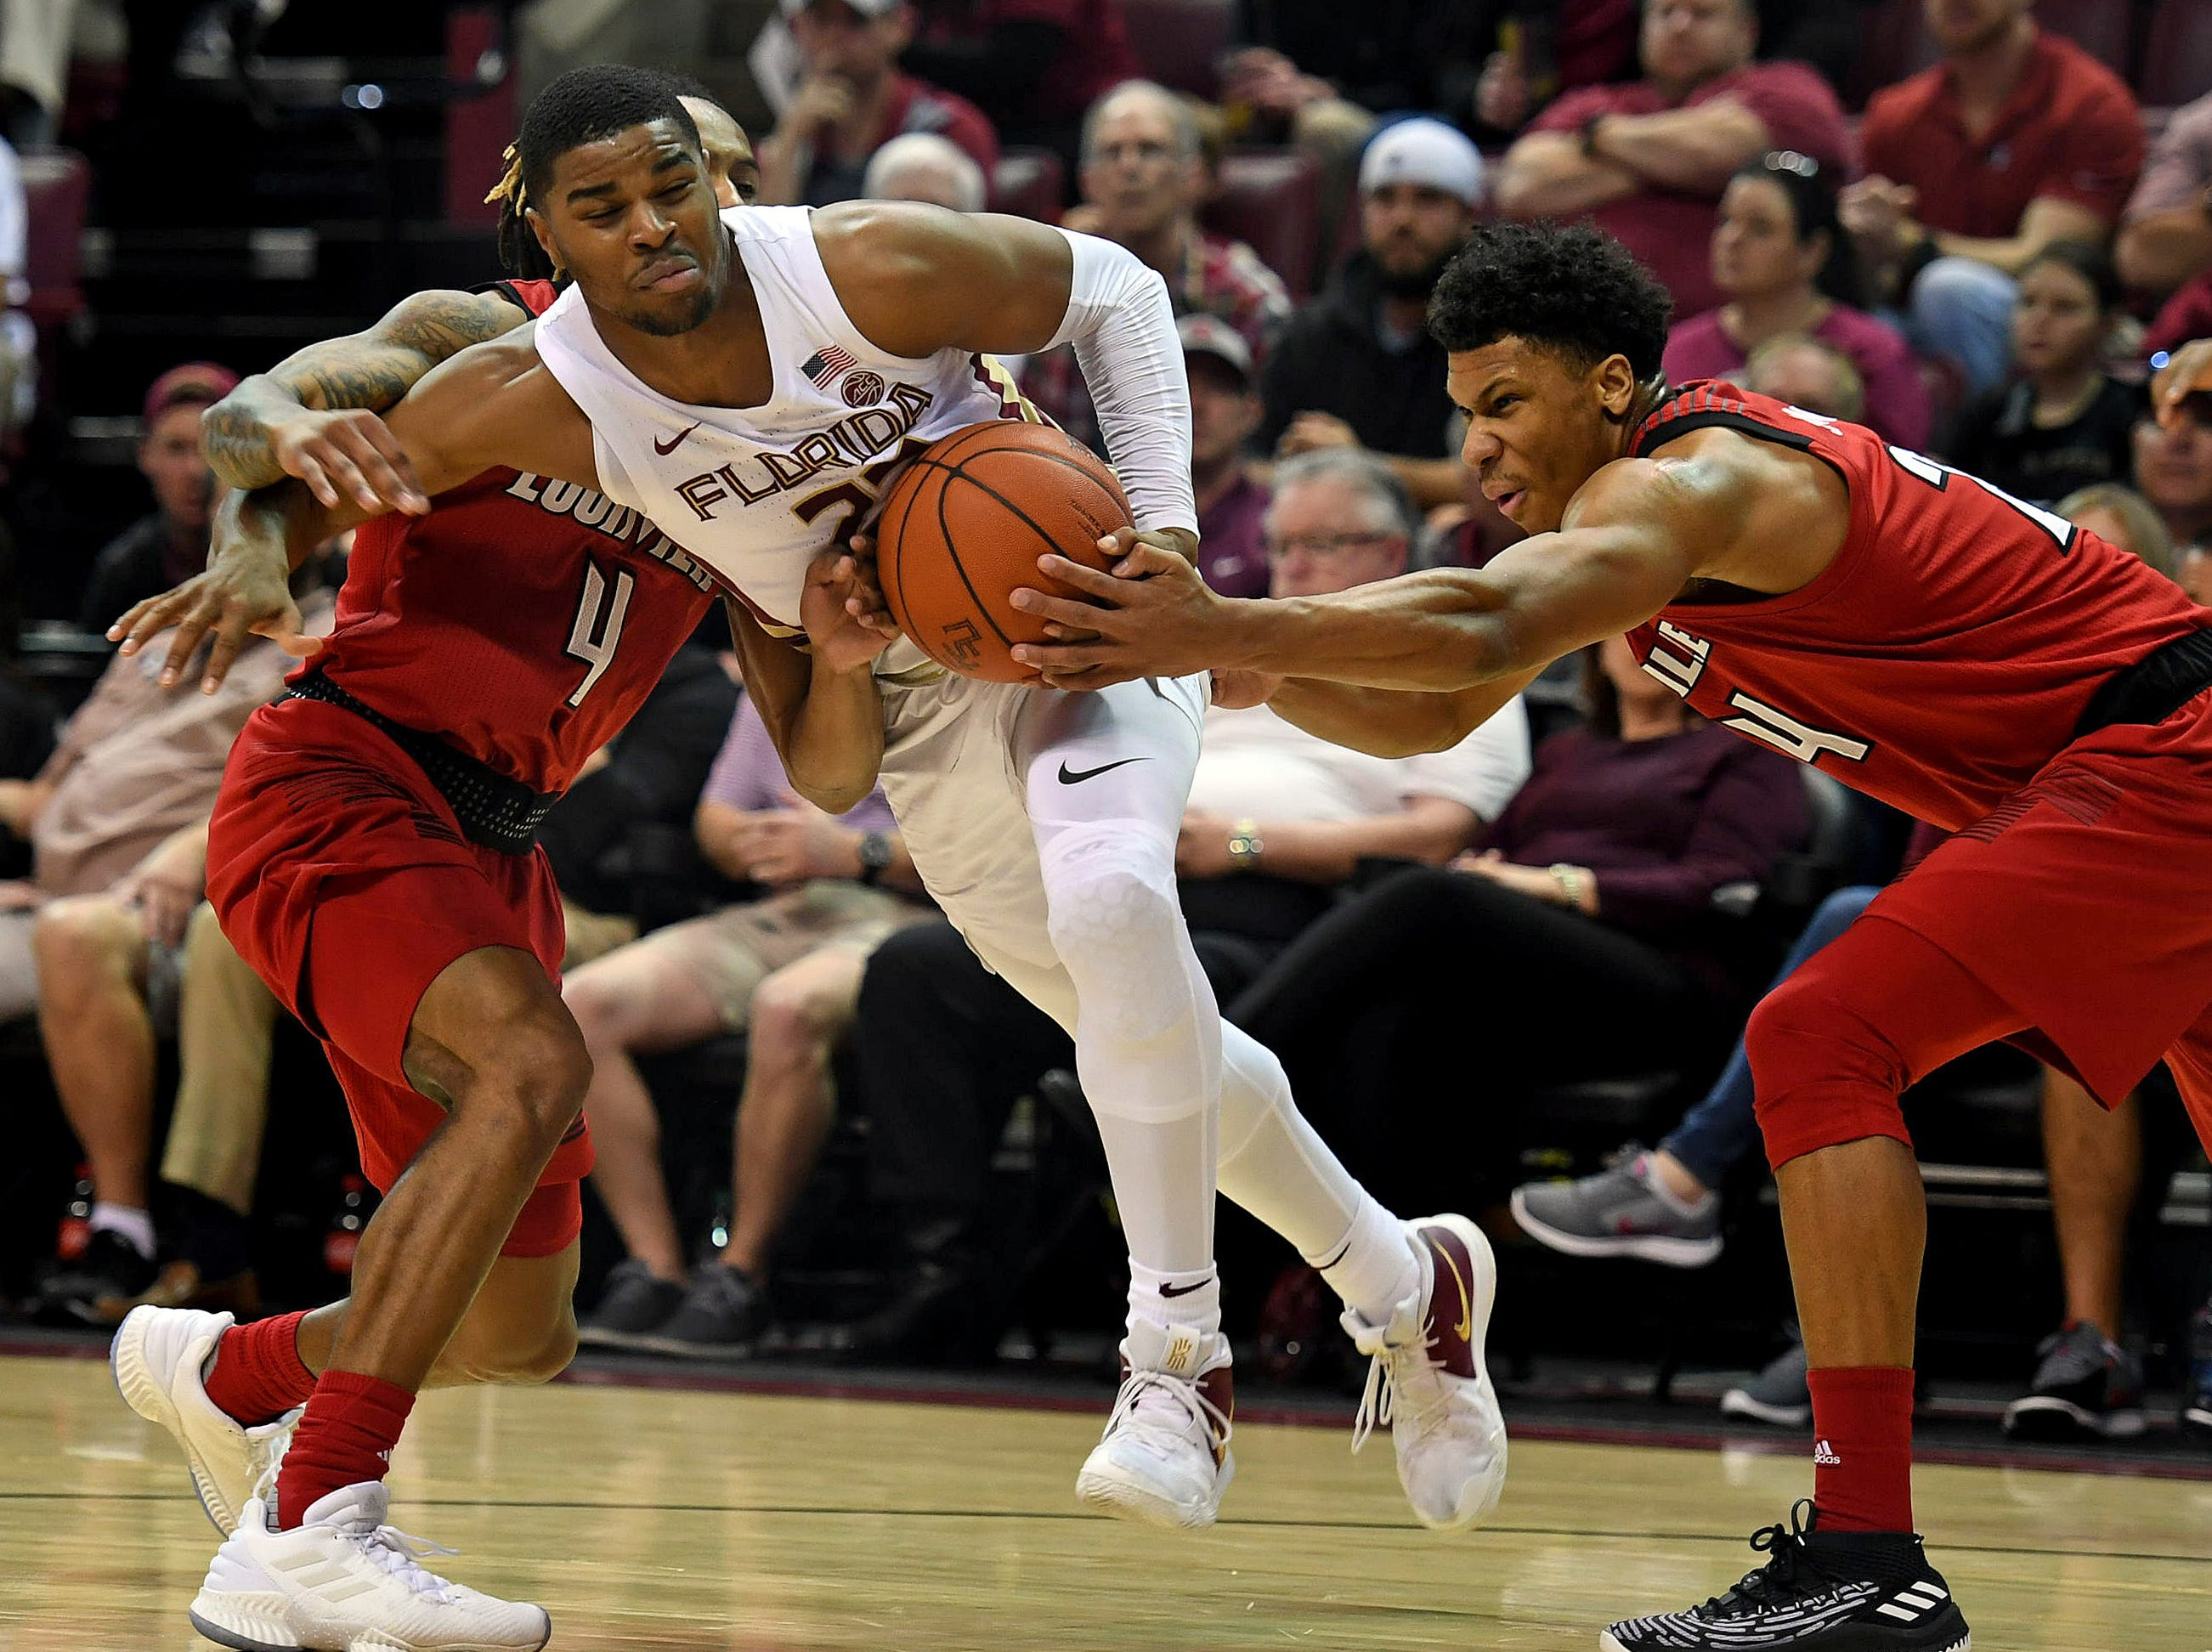 Feb 9, 2019; Tallahassee, FL, USA; Louisville Cardinals forward Dwayne Sutton (24) fights for a ball against Florida State Seminoles guard MJ Walker (23) during the first half at Donald L. Tucker Center. Mandatory Credit: Melina Myers-USA TODAY Sports